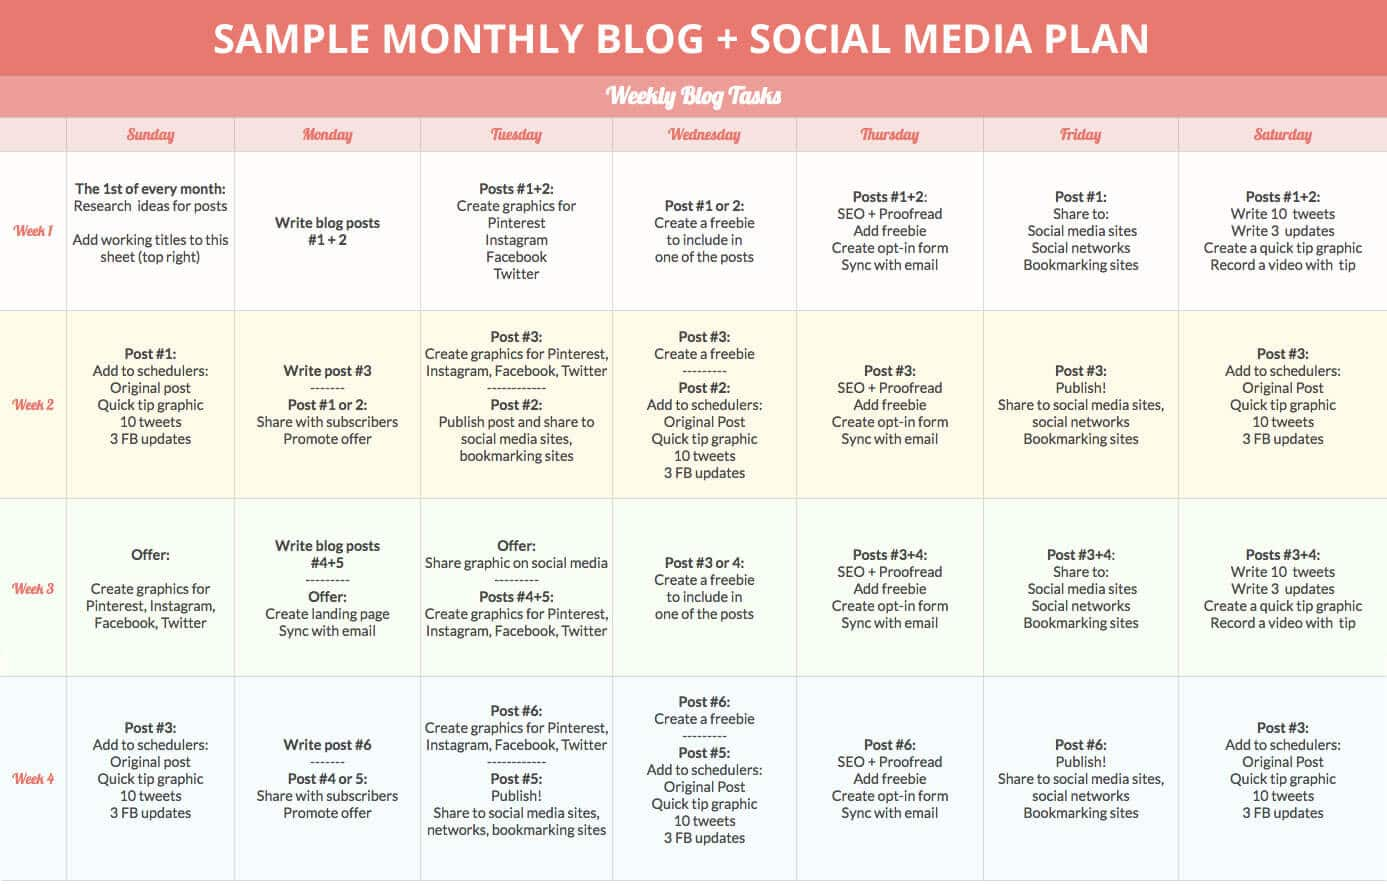 sample_blog_monthly_goal_plan3.jpg